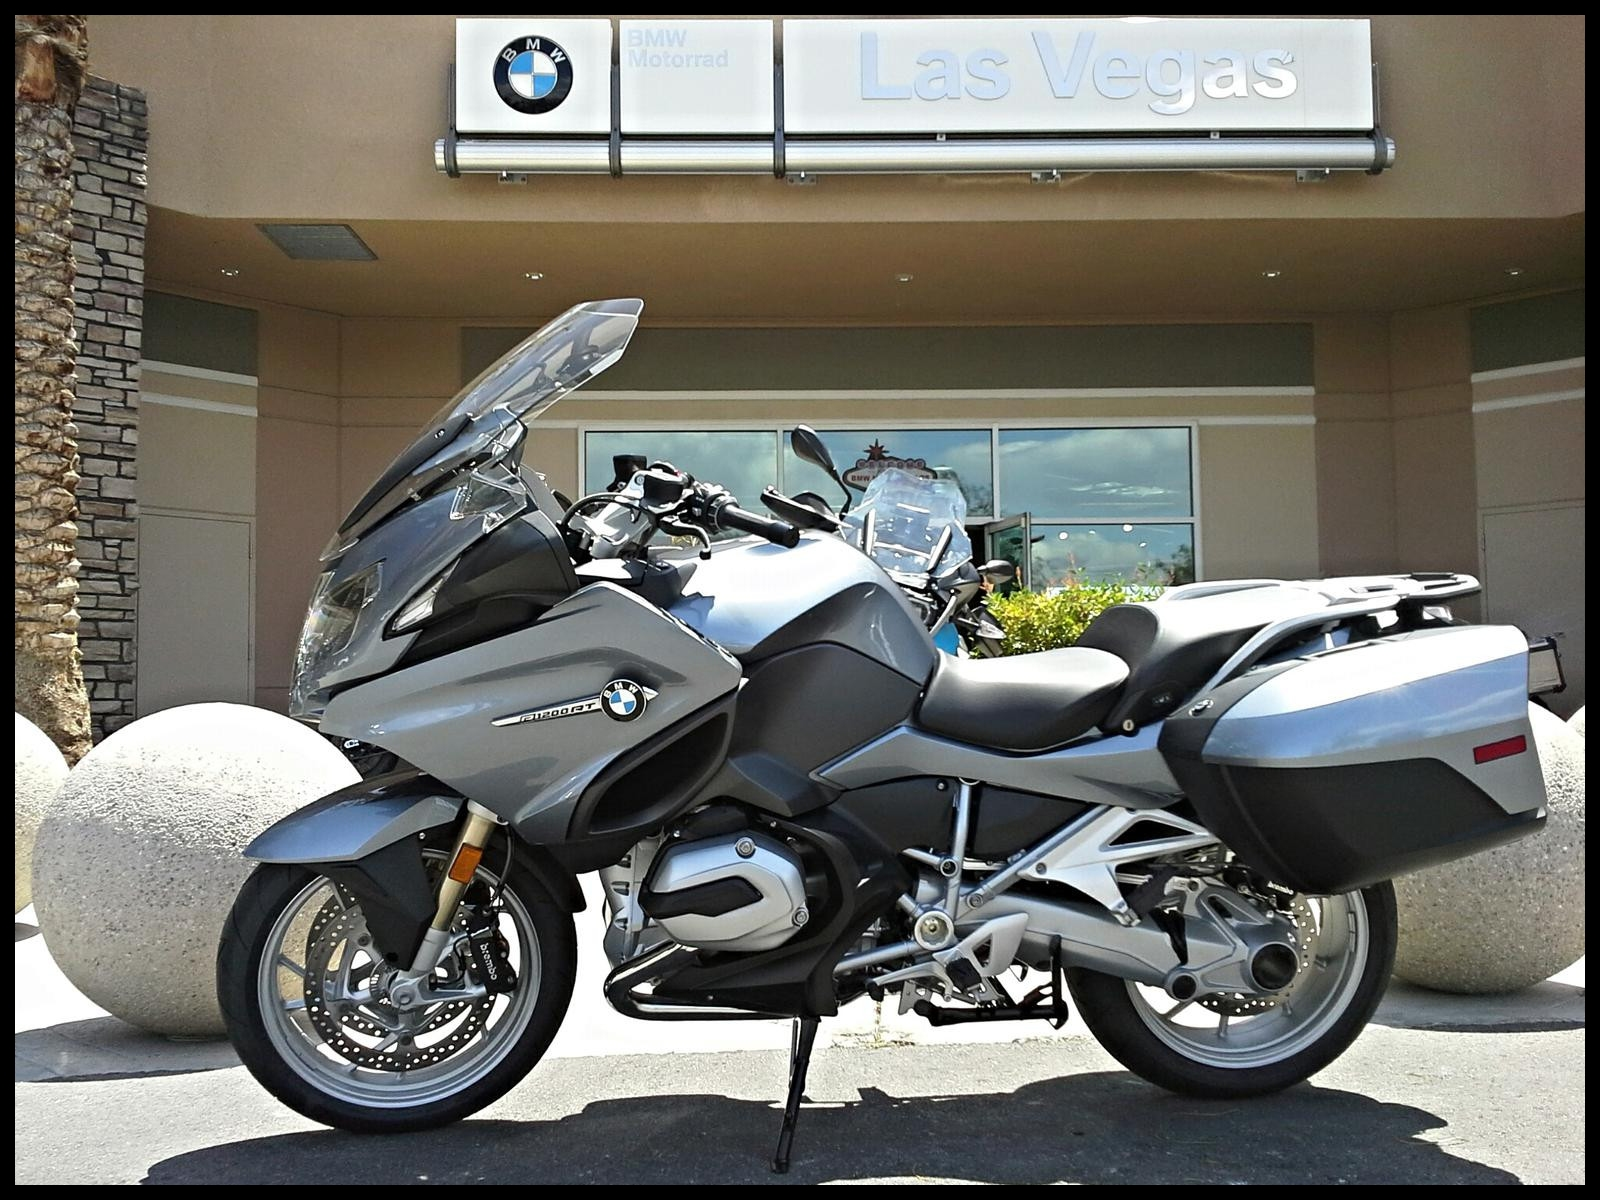 Bmw R1200rt Motorcycle Awesome Page 7 New & Used R1200rt Motorcycles for Sale New &amp